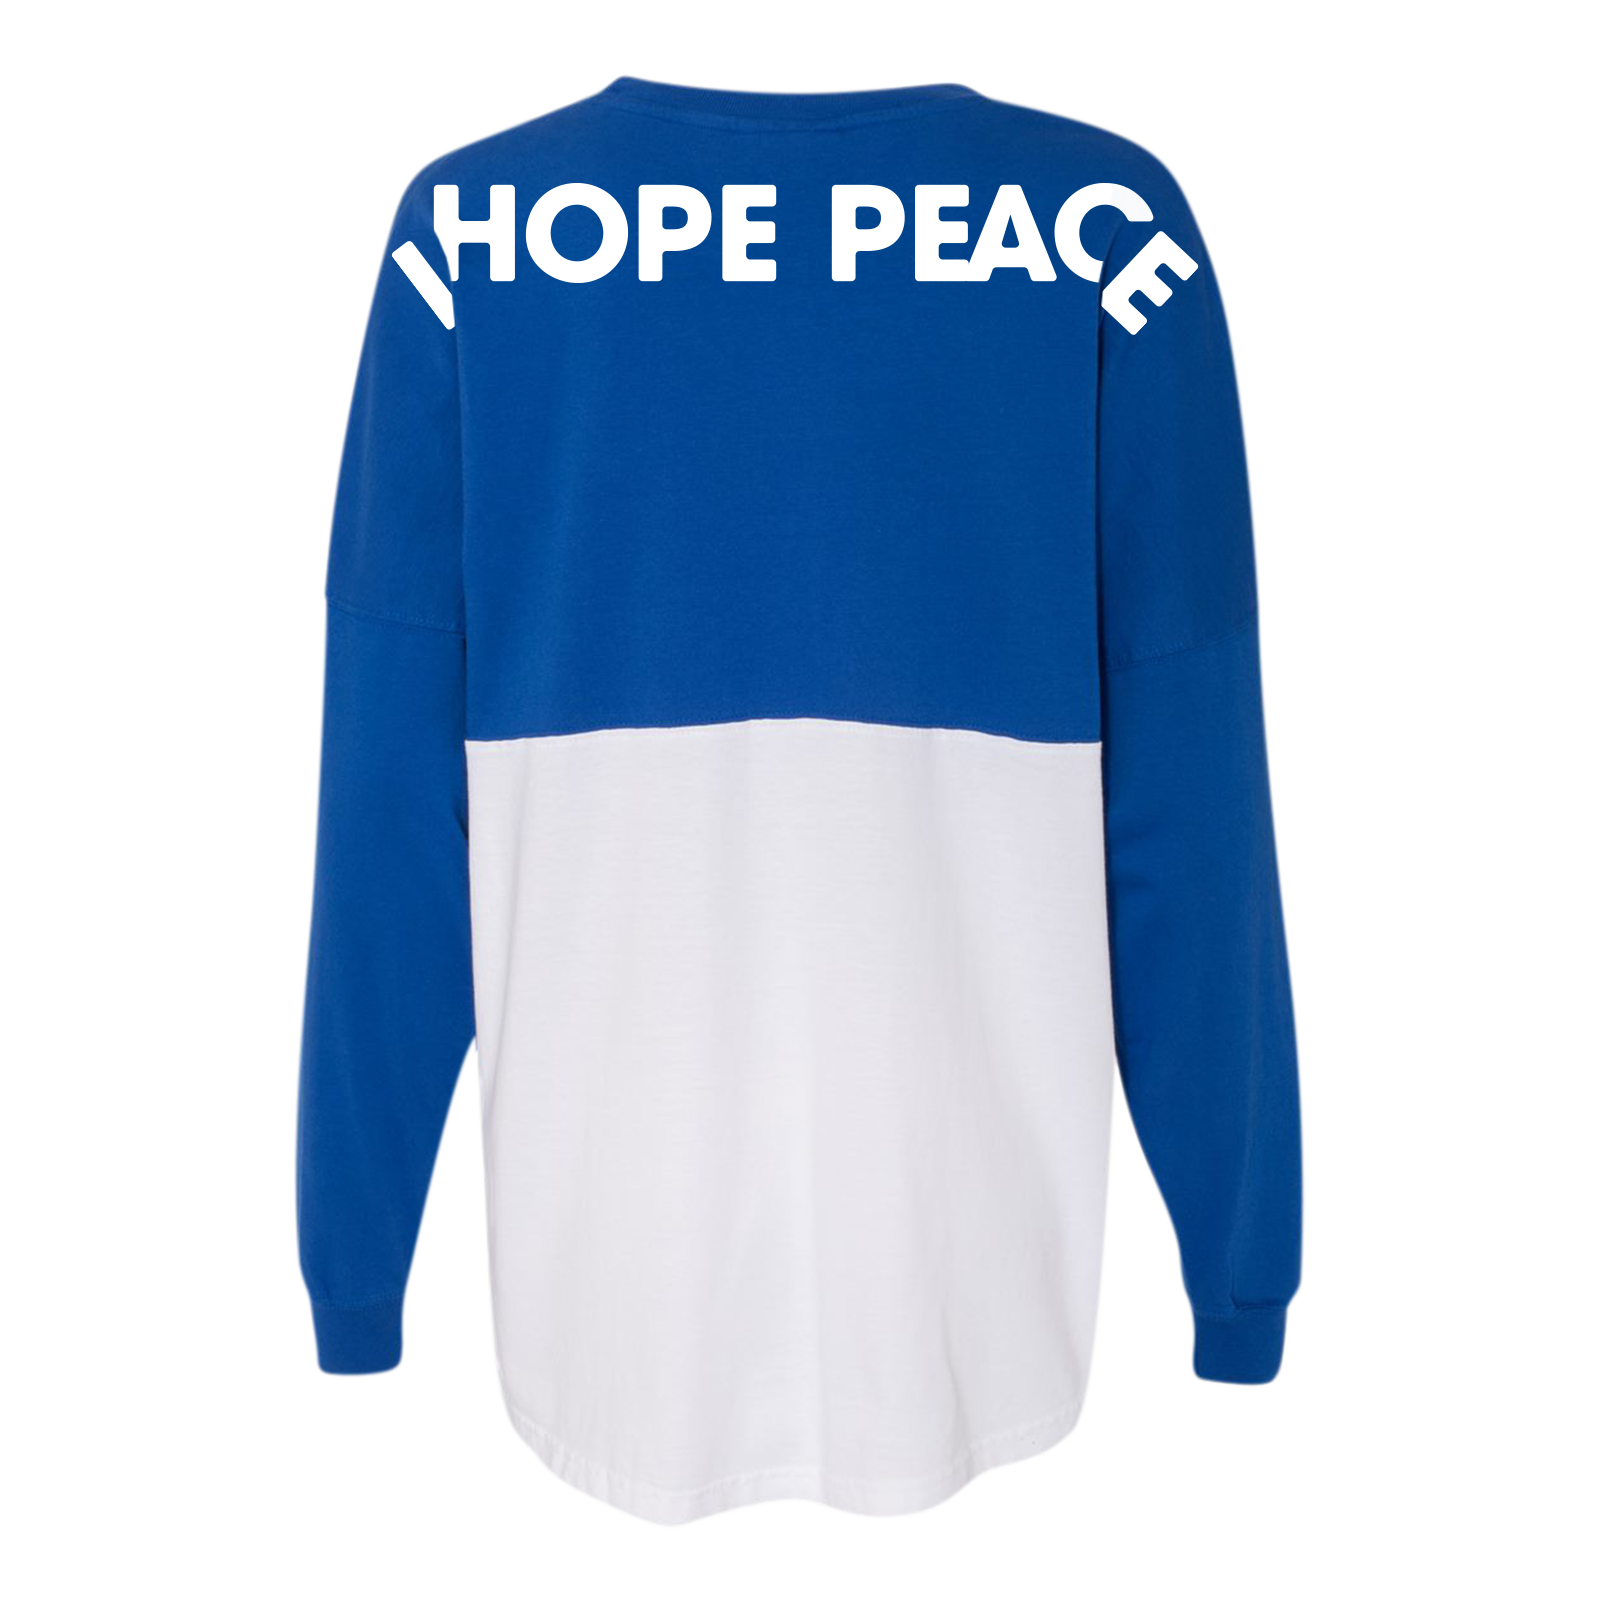 I Hope Peace Royal/White Spirit Jersey